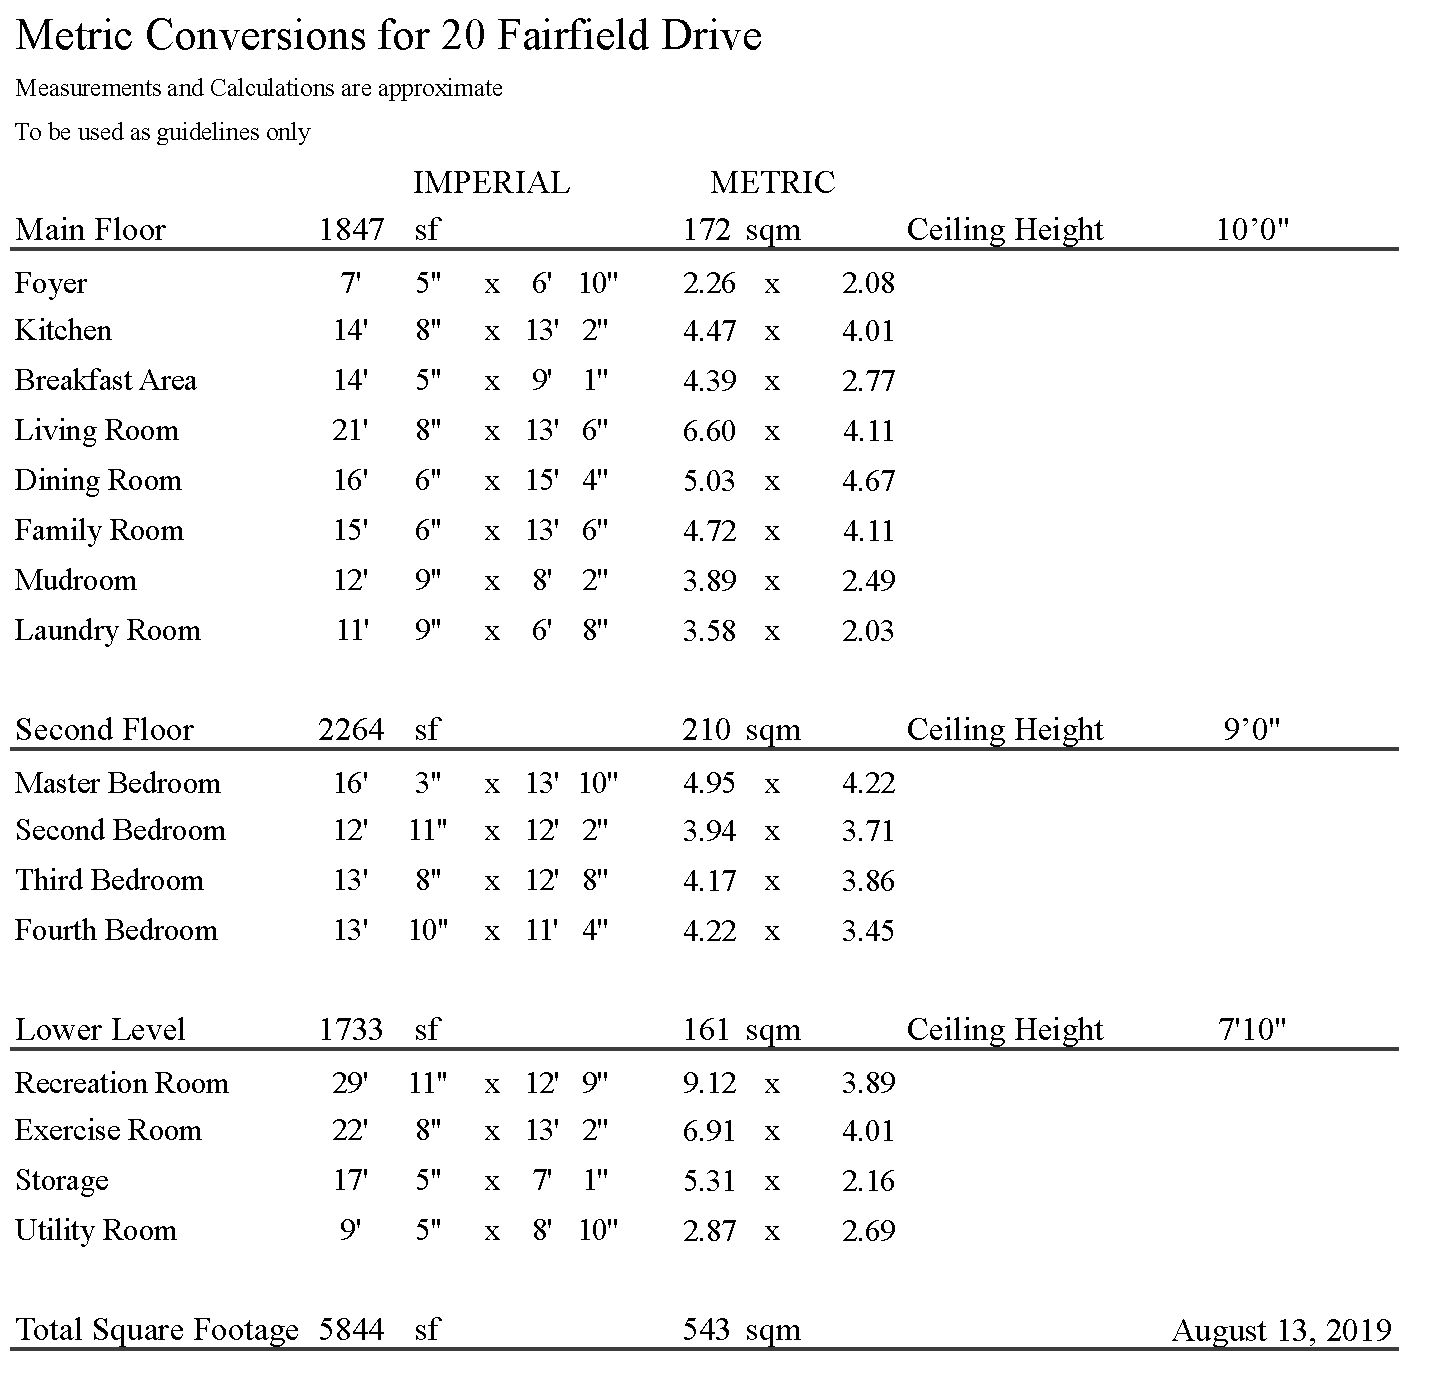 20 Fairfield Drive Metric Conversions.png